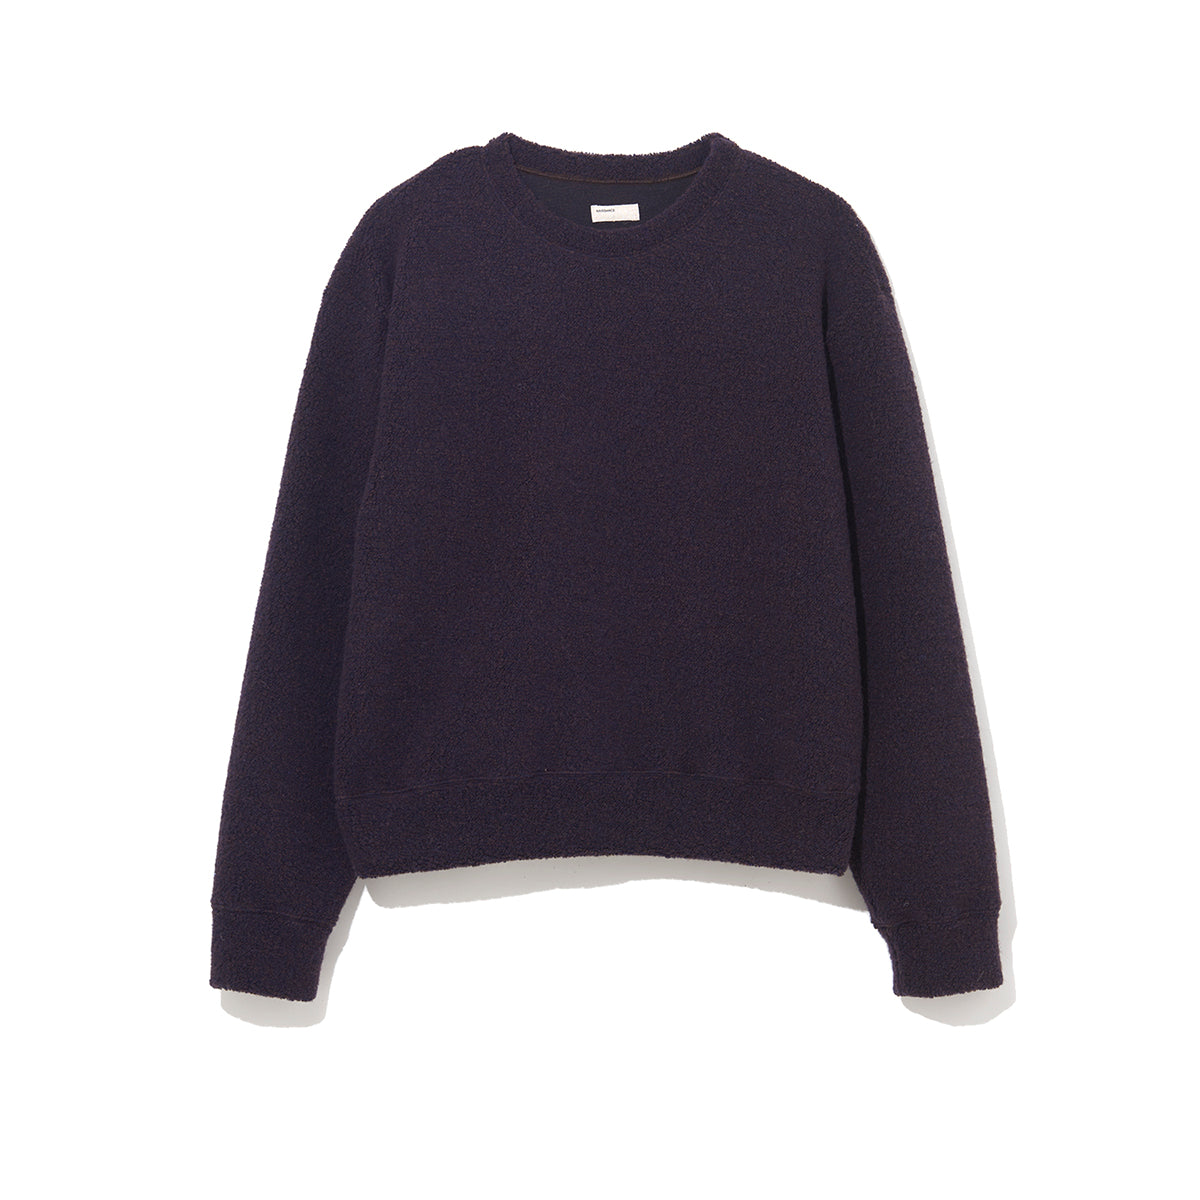 WOOL PILE PULLOVER / BLACK (21A-NSA-CS-01)